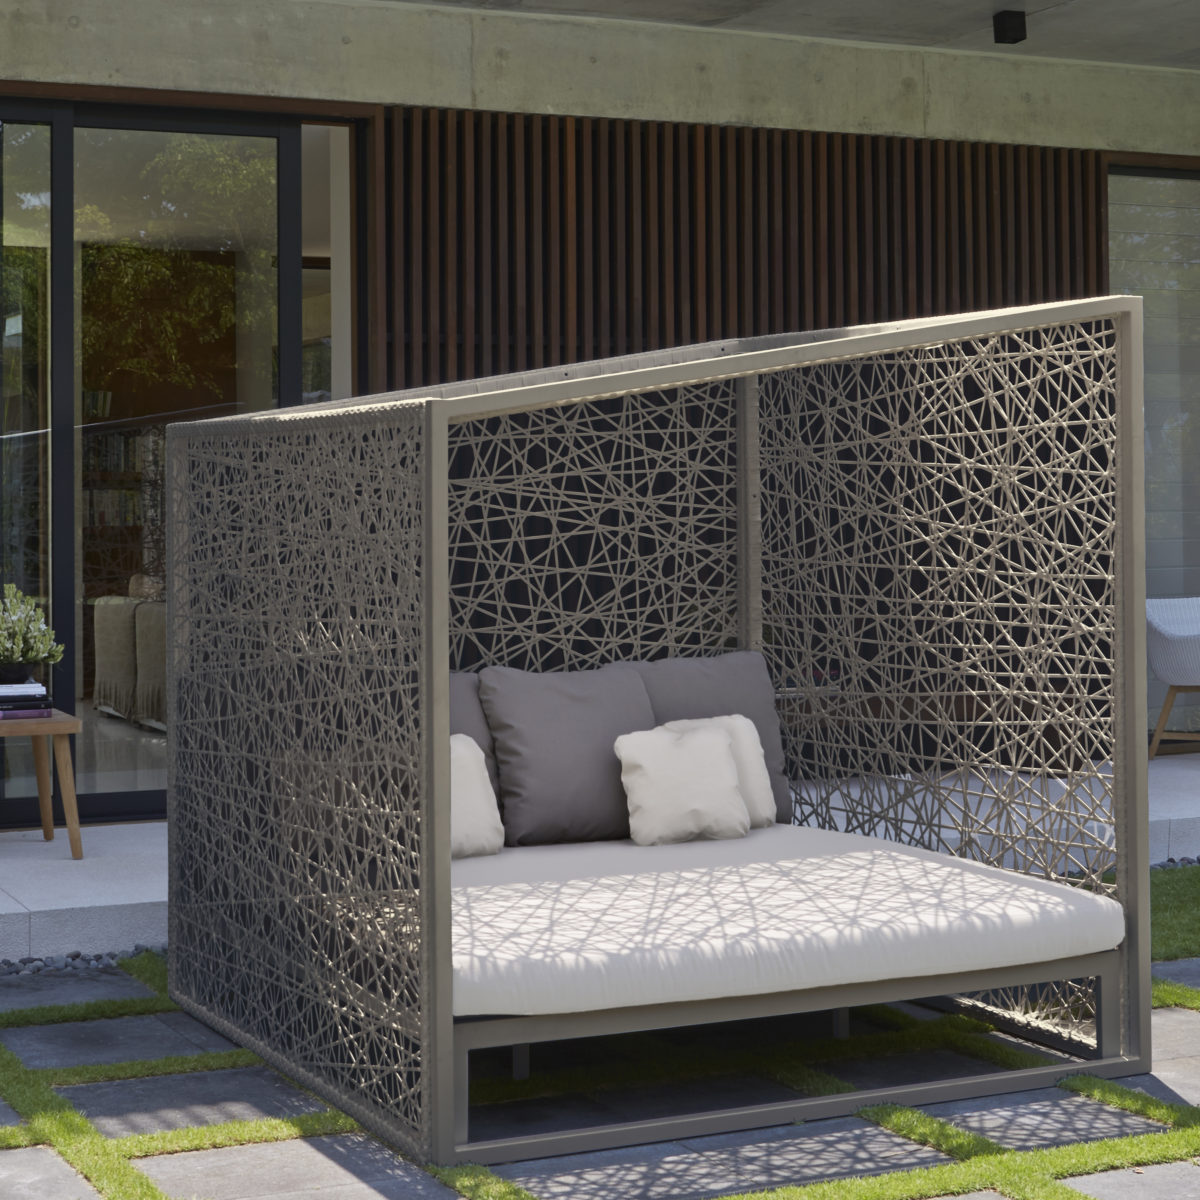 Skyline Geometric Daybed Couture Outdoor